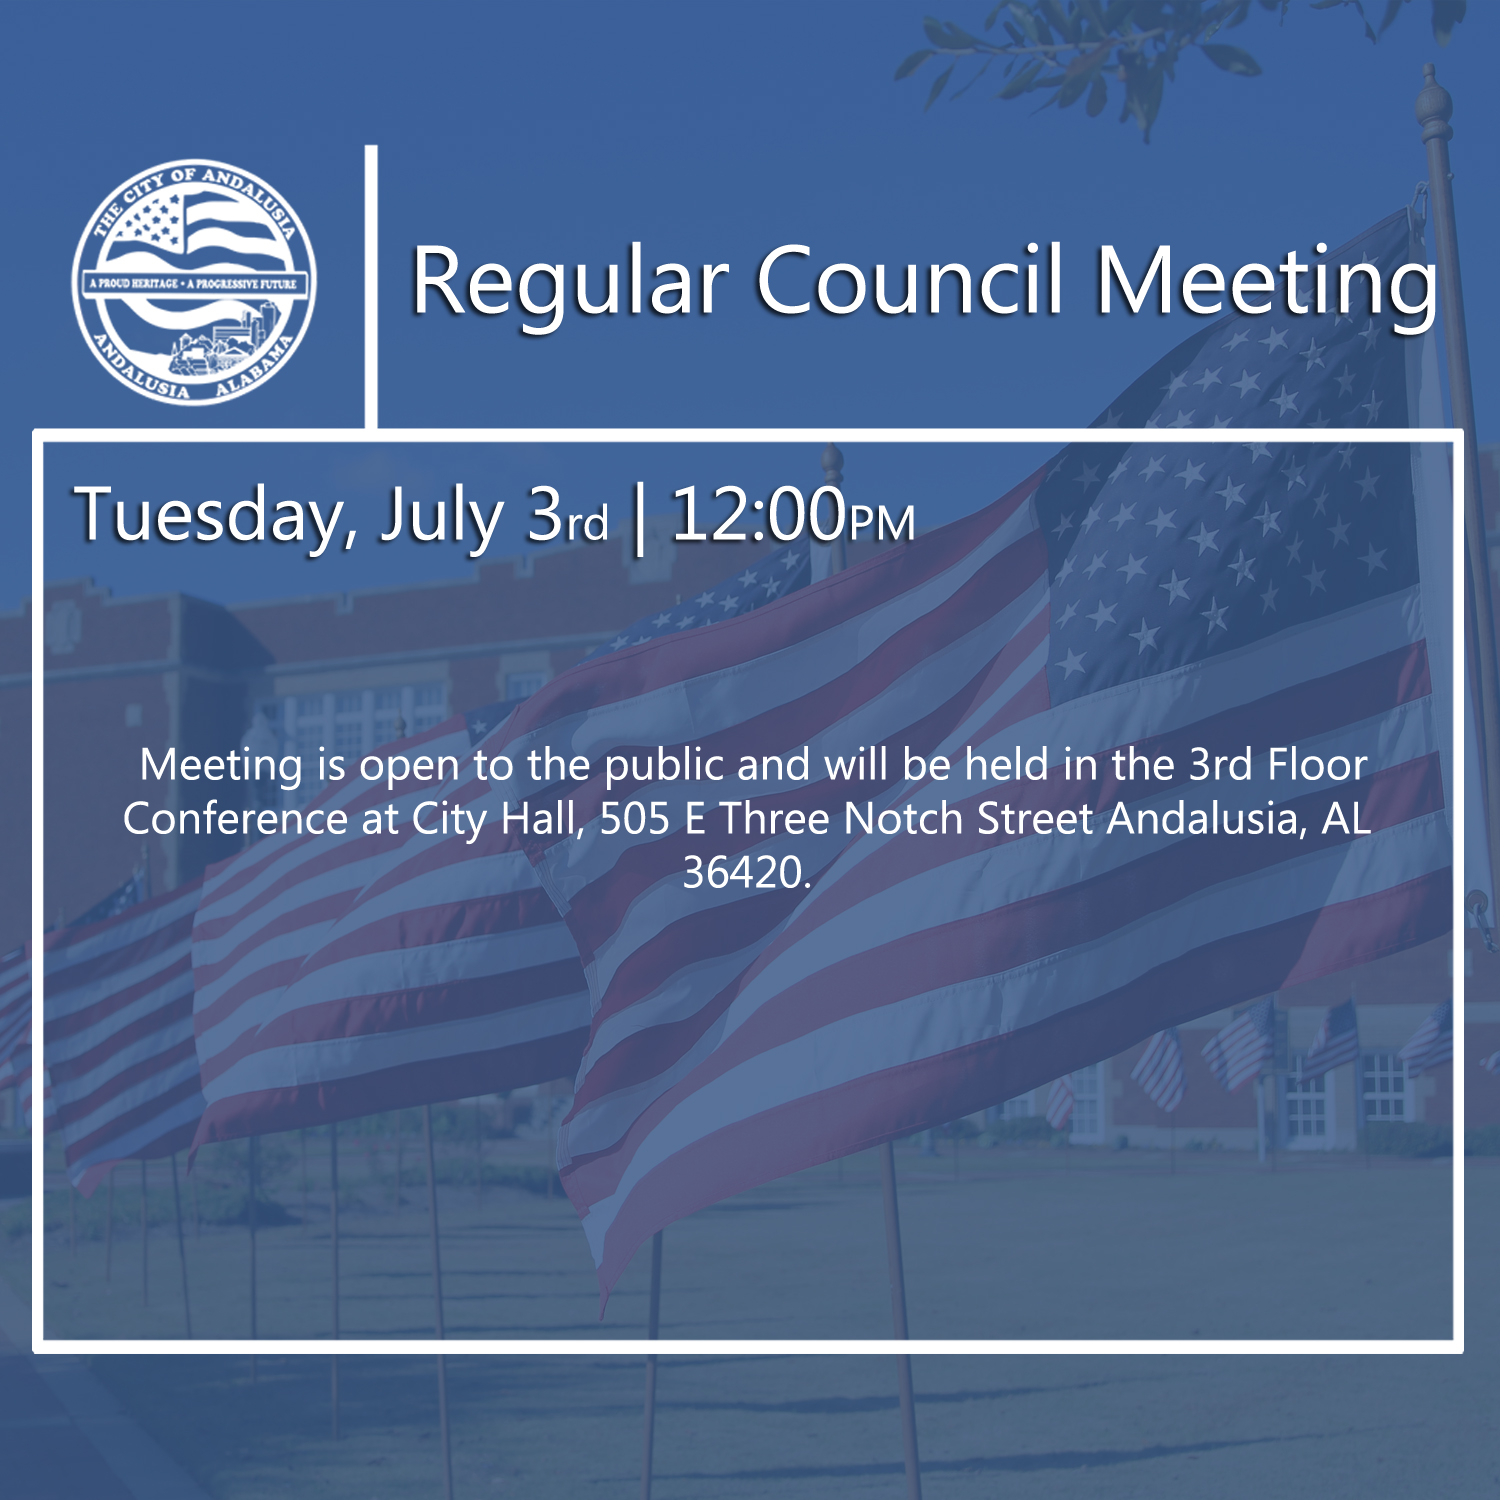 Website Regular Council Meeting July 3rd